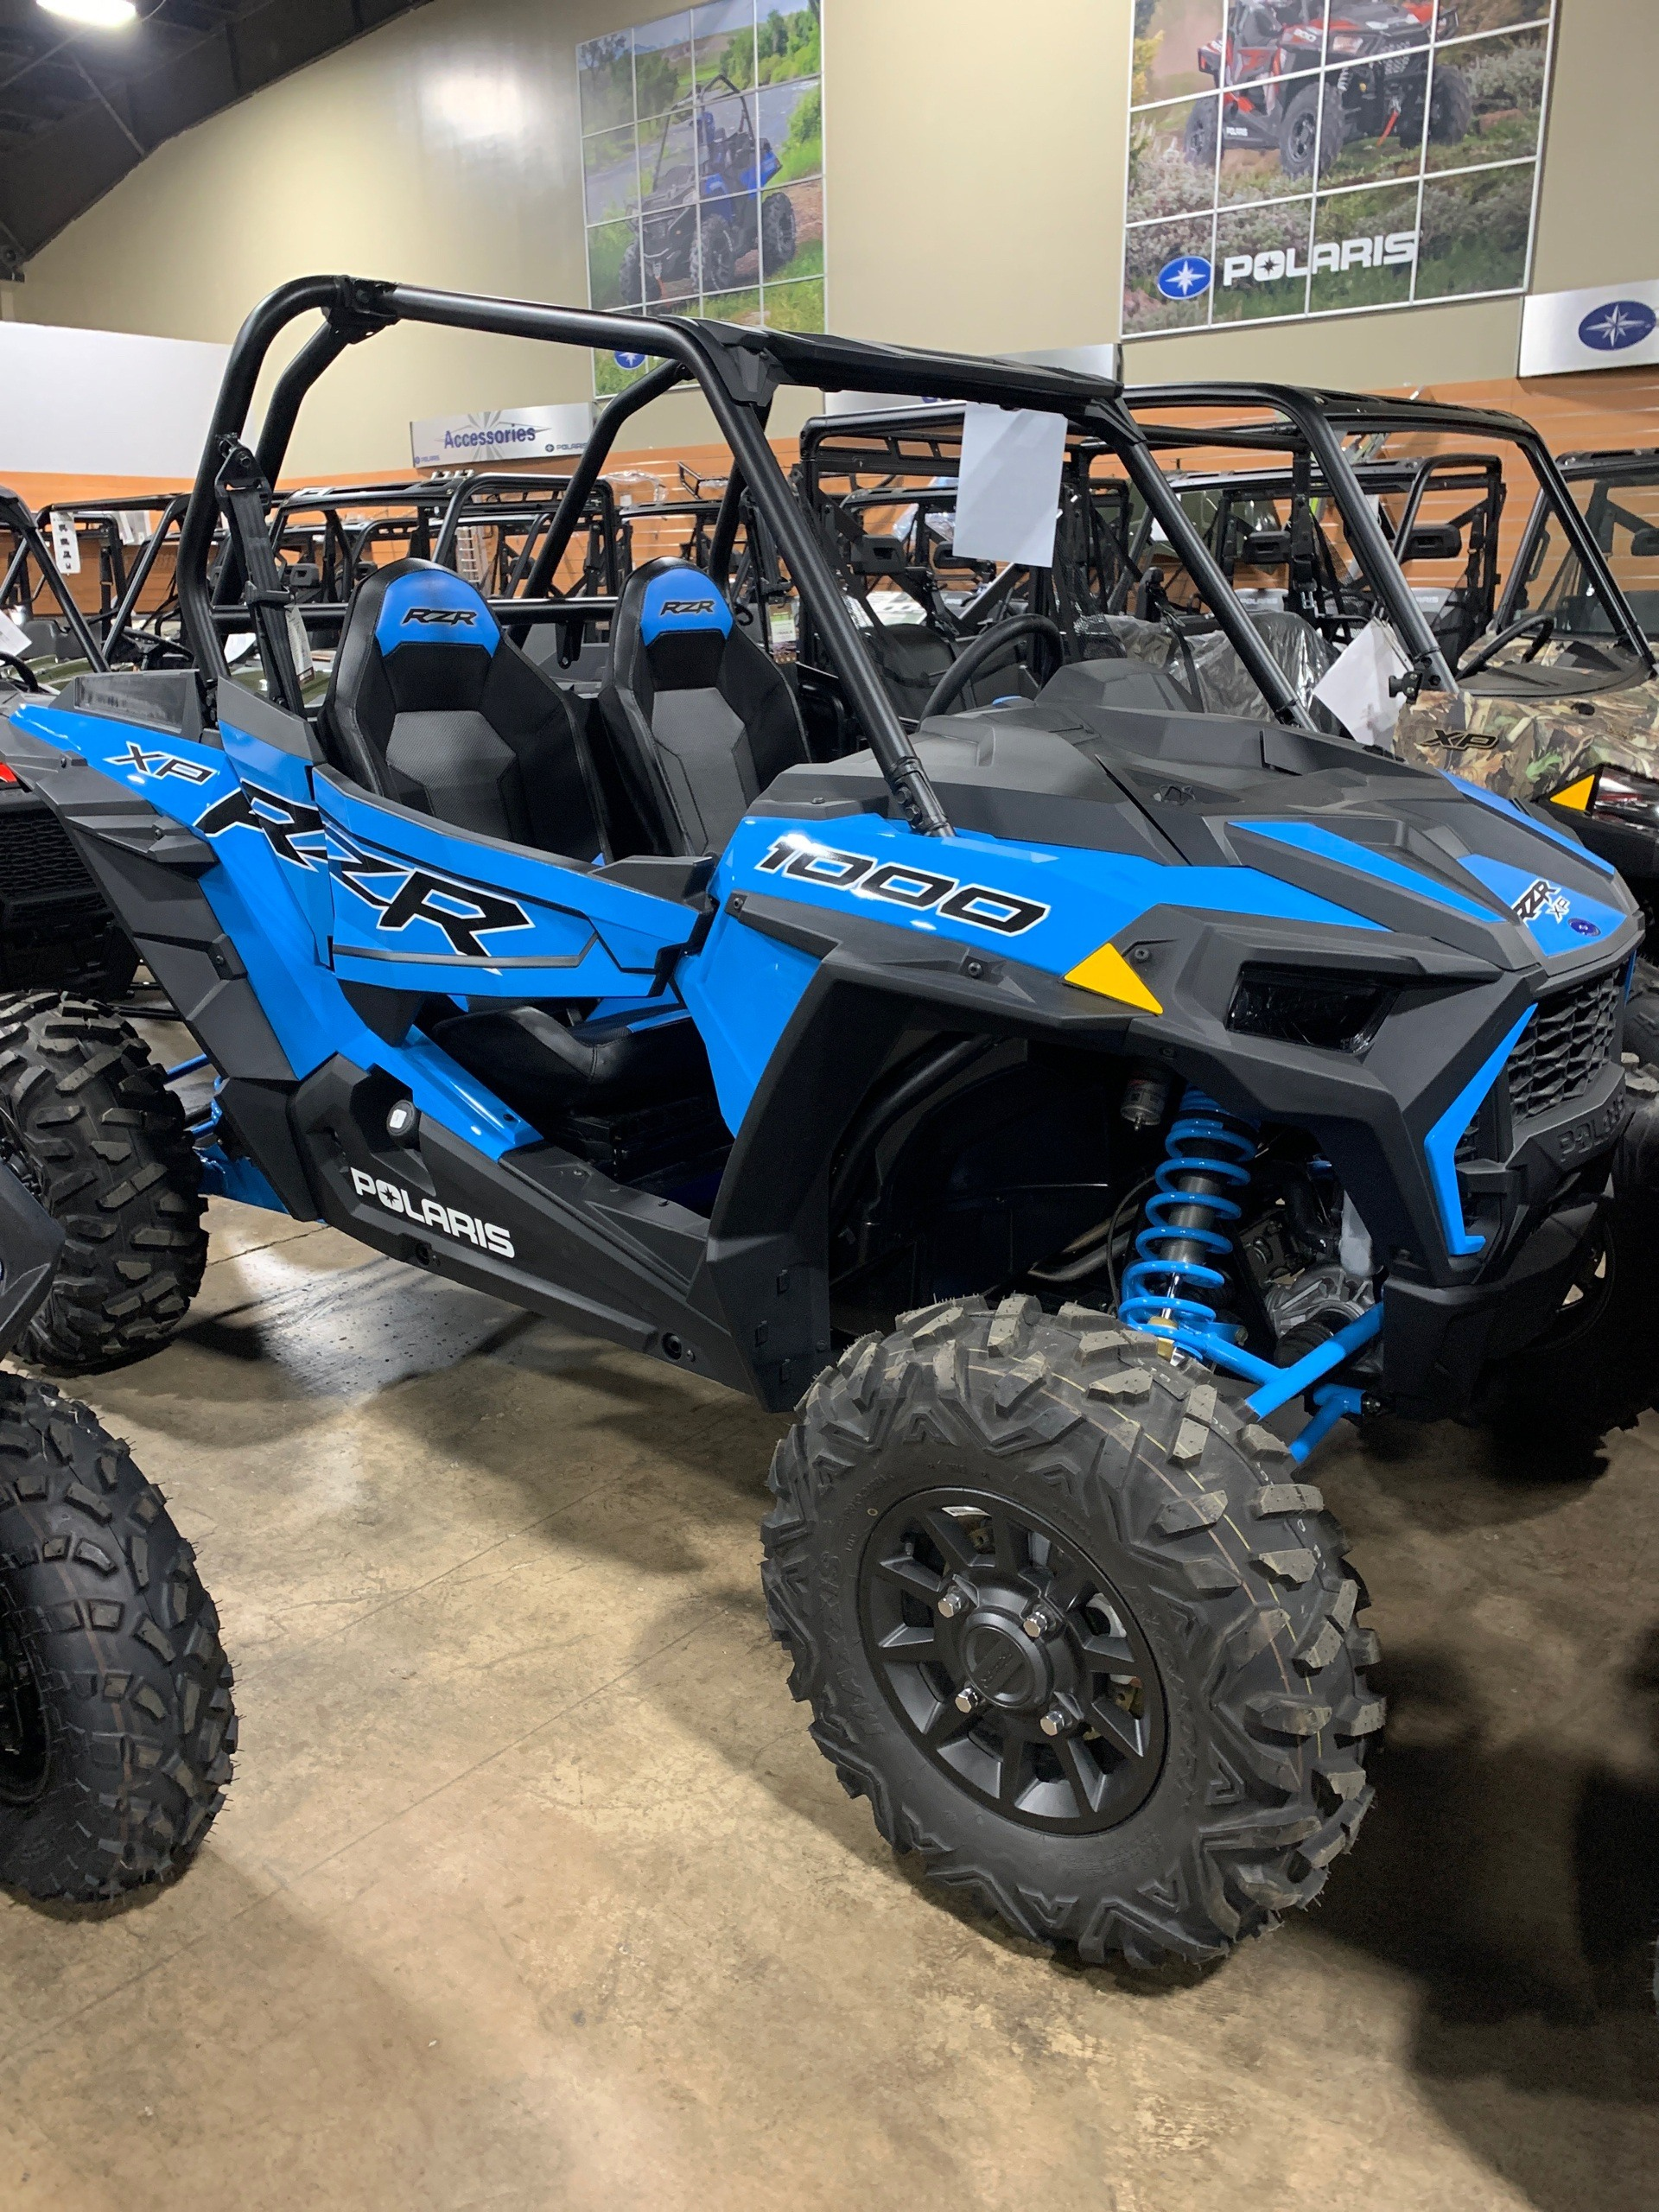 2020 Polaris RZR XP 1000 in Woodstock, Illinois - Photo 1